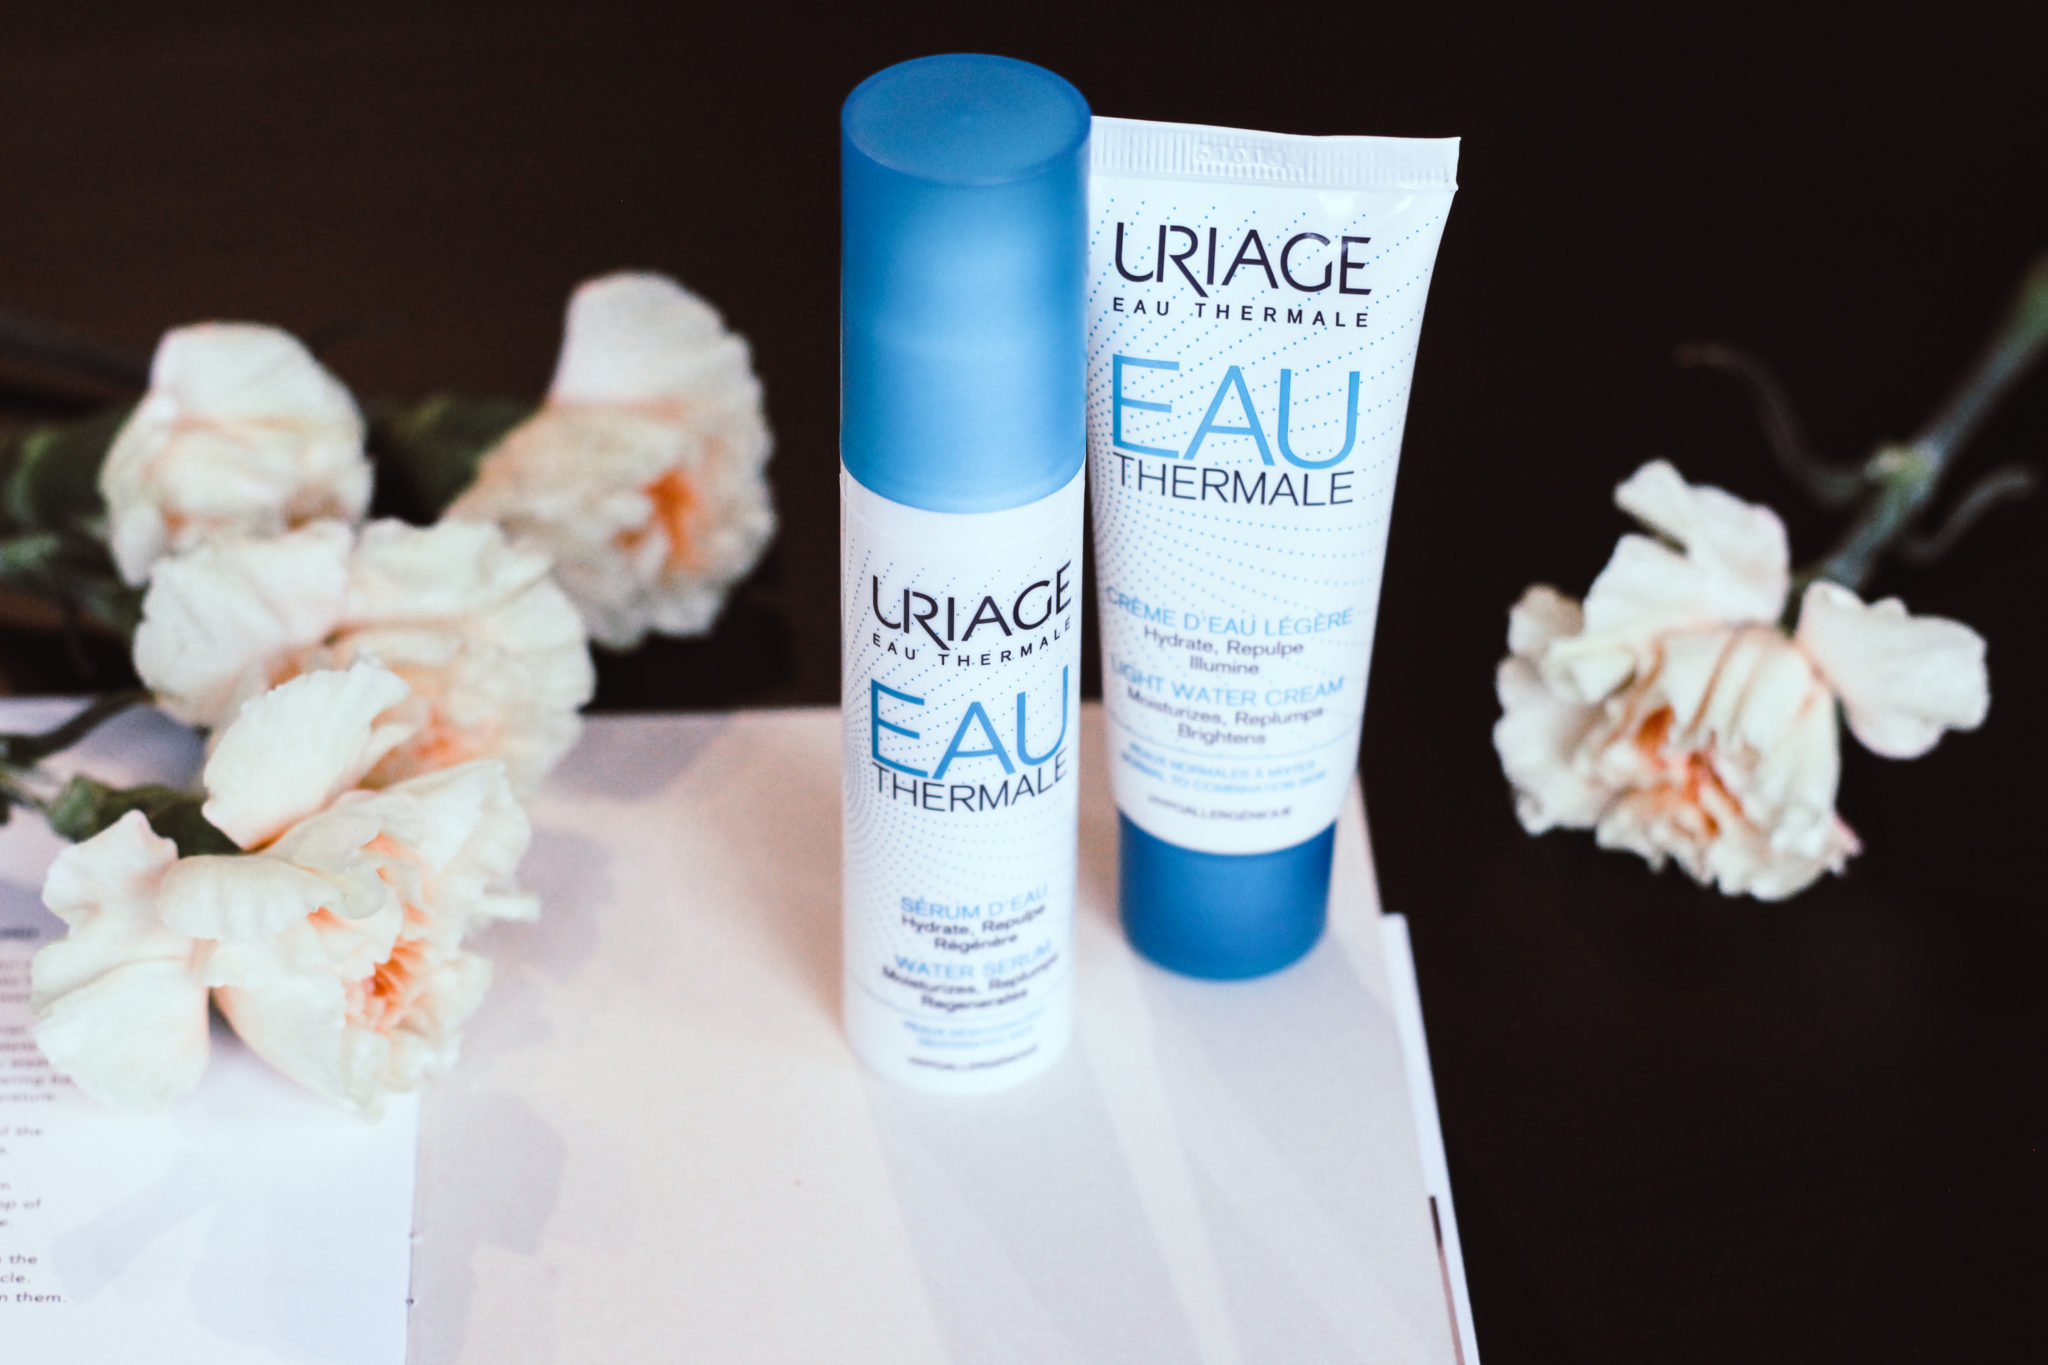 Facial Care by Uriage Eau Thermale Review by Quite a Looker